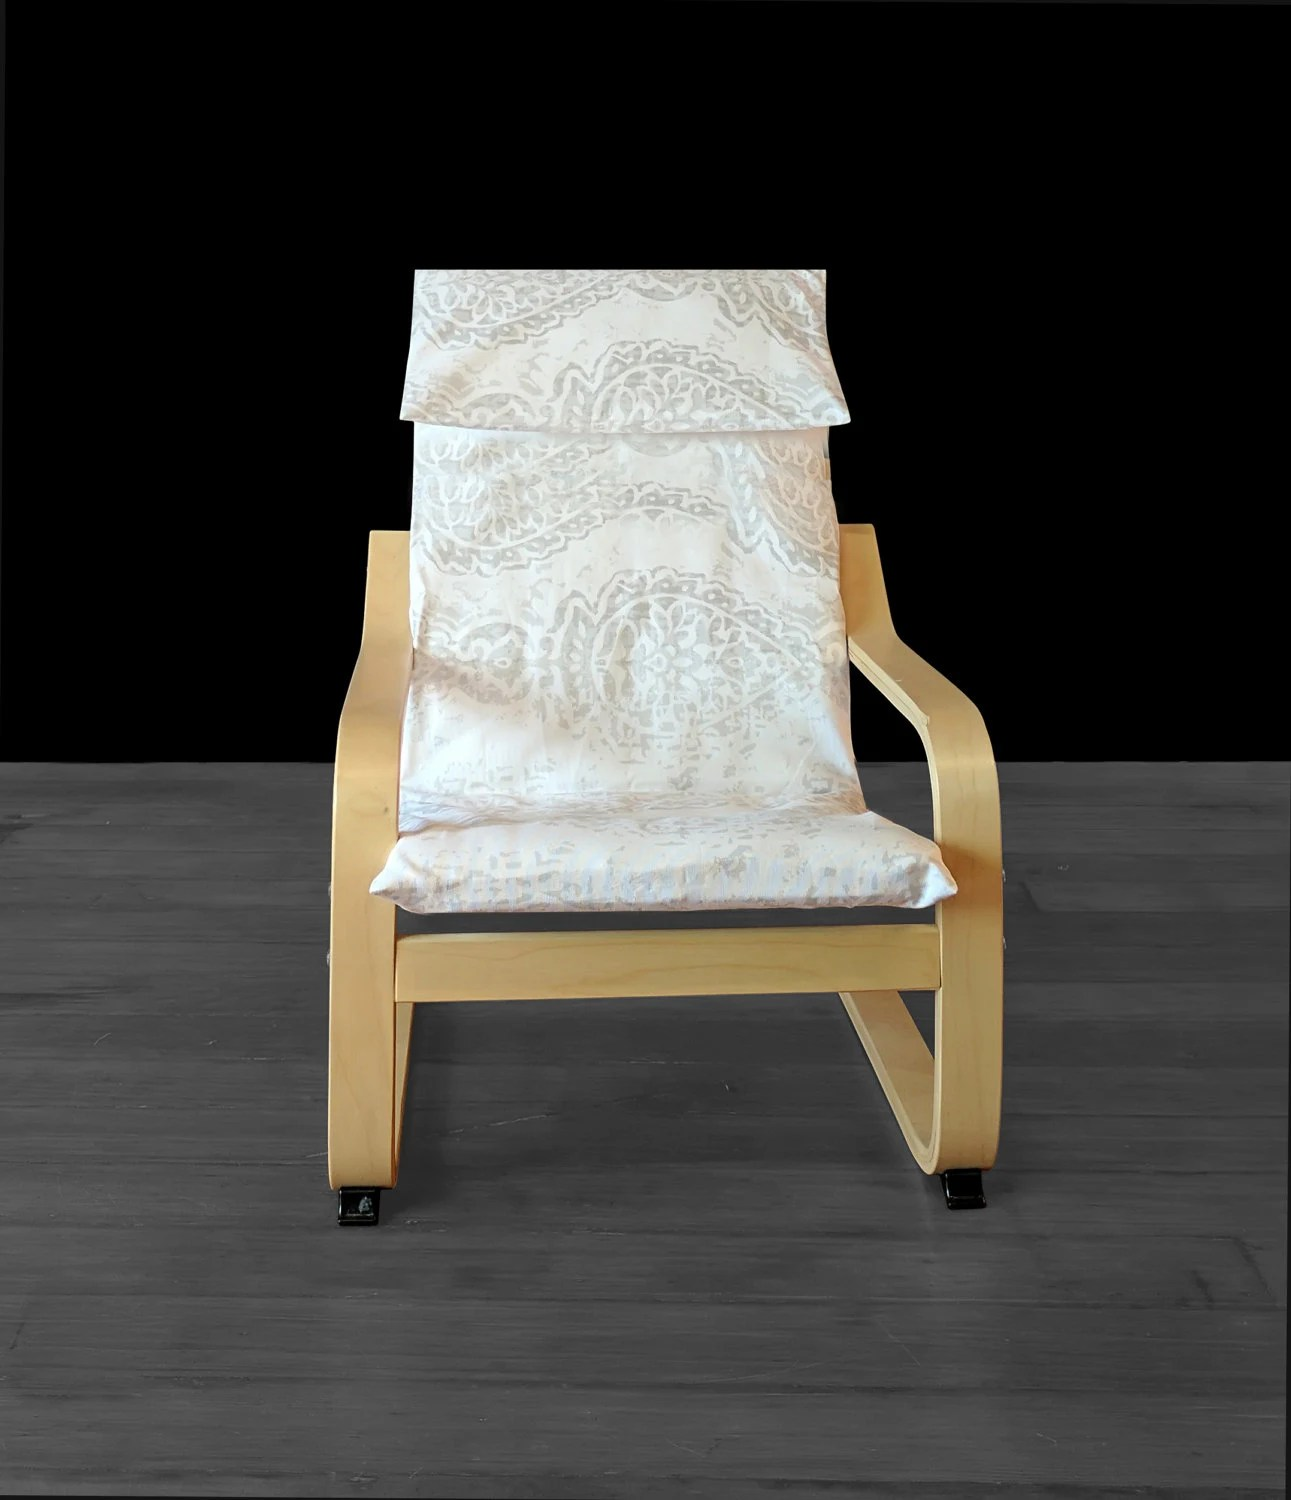 poang chair covers etsy cheap folding chairs childrens ikea cover image 0